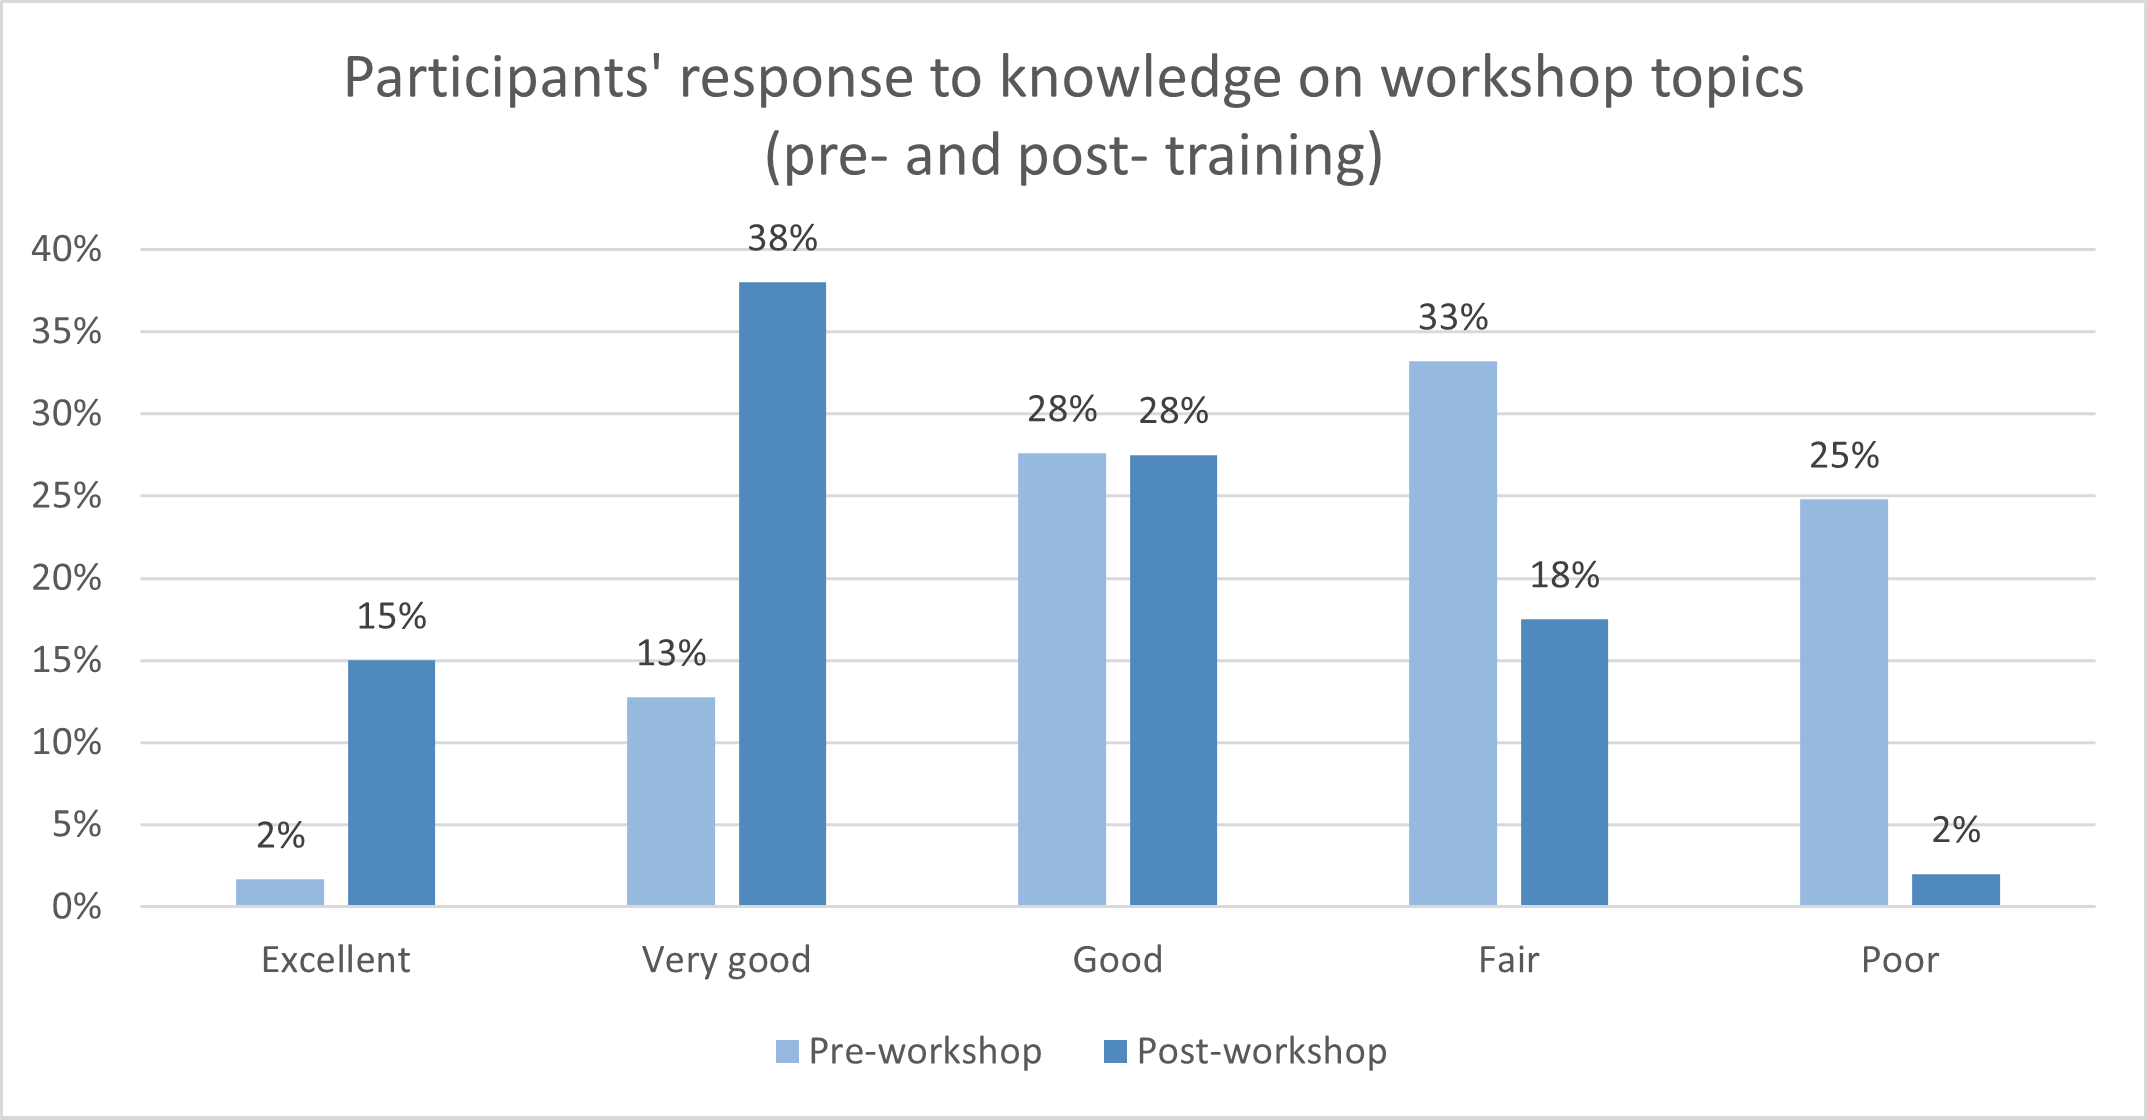 Participants' response to knowledge